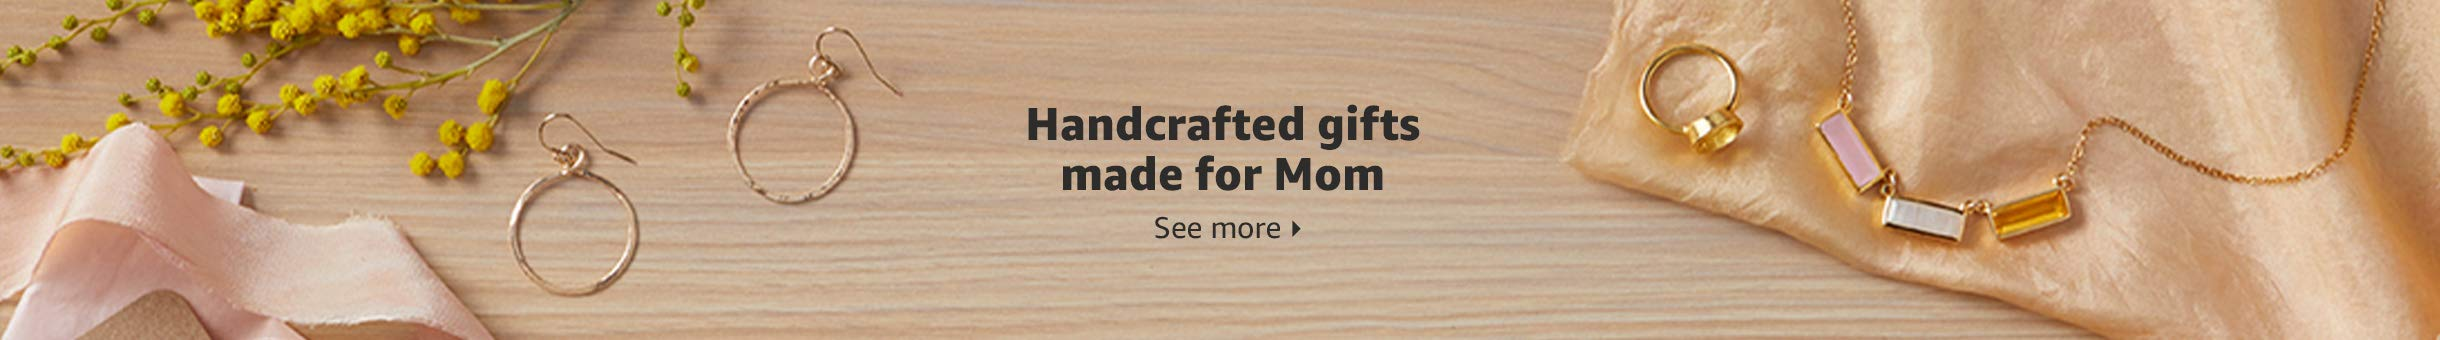 Handcrafted gifts for Mom. See more.